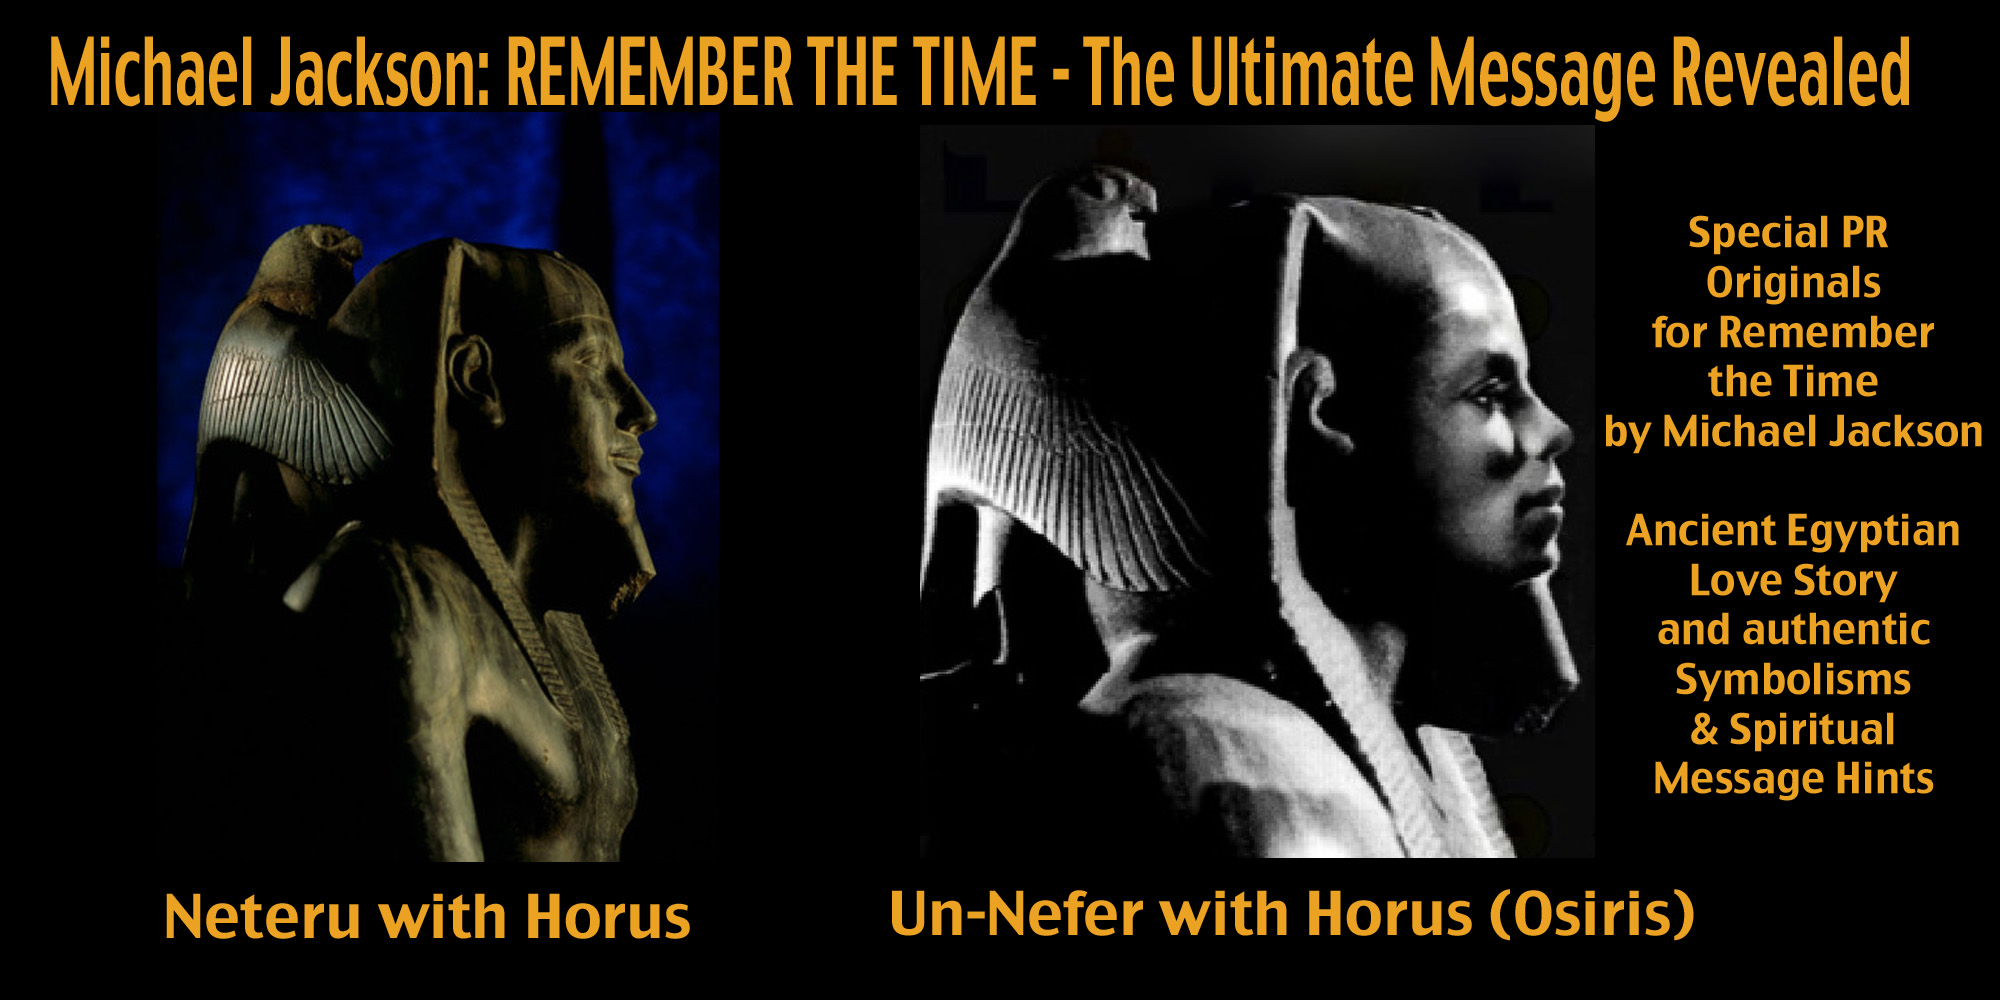 Remember The Time By Michael Jackson Special Pr Images Symbolism